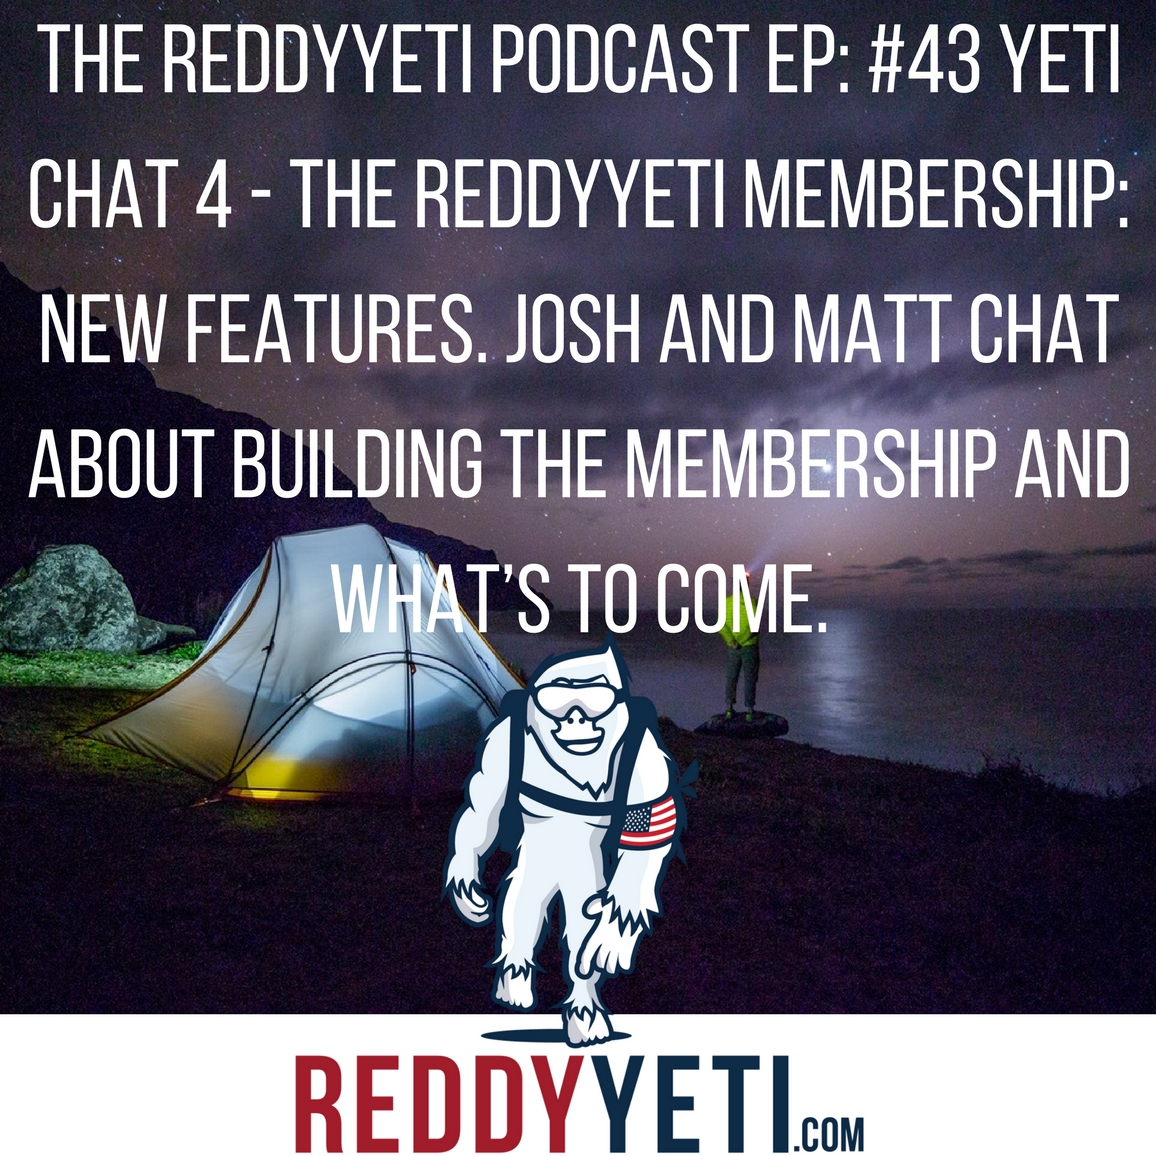 Yeti Chat 4 Podcast image.jpg